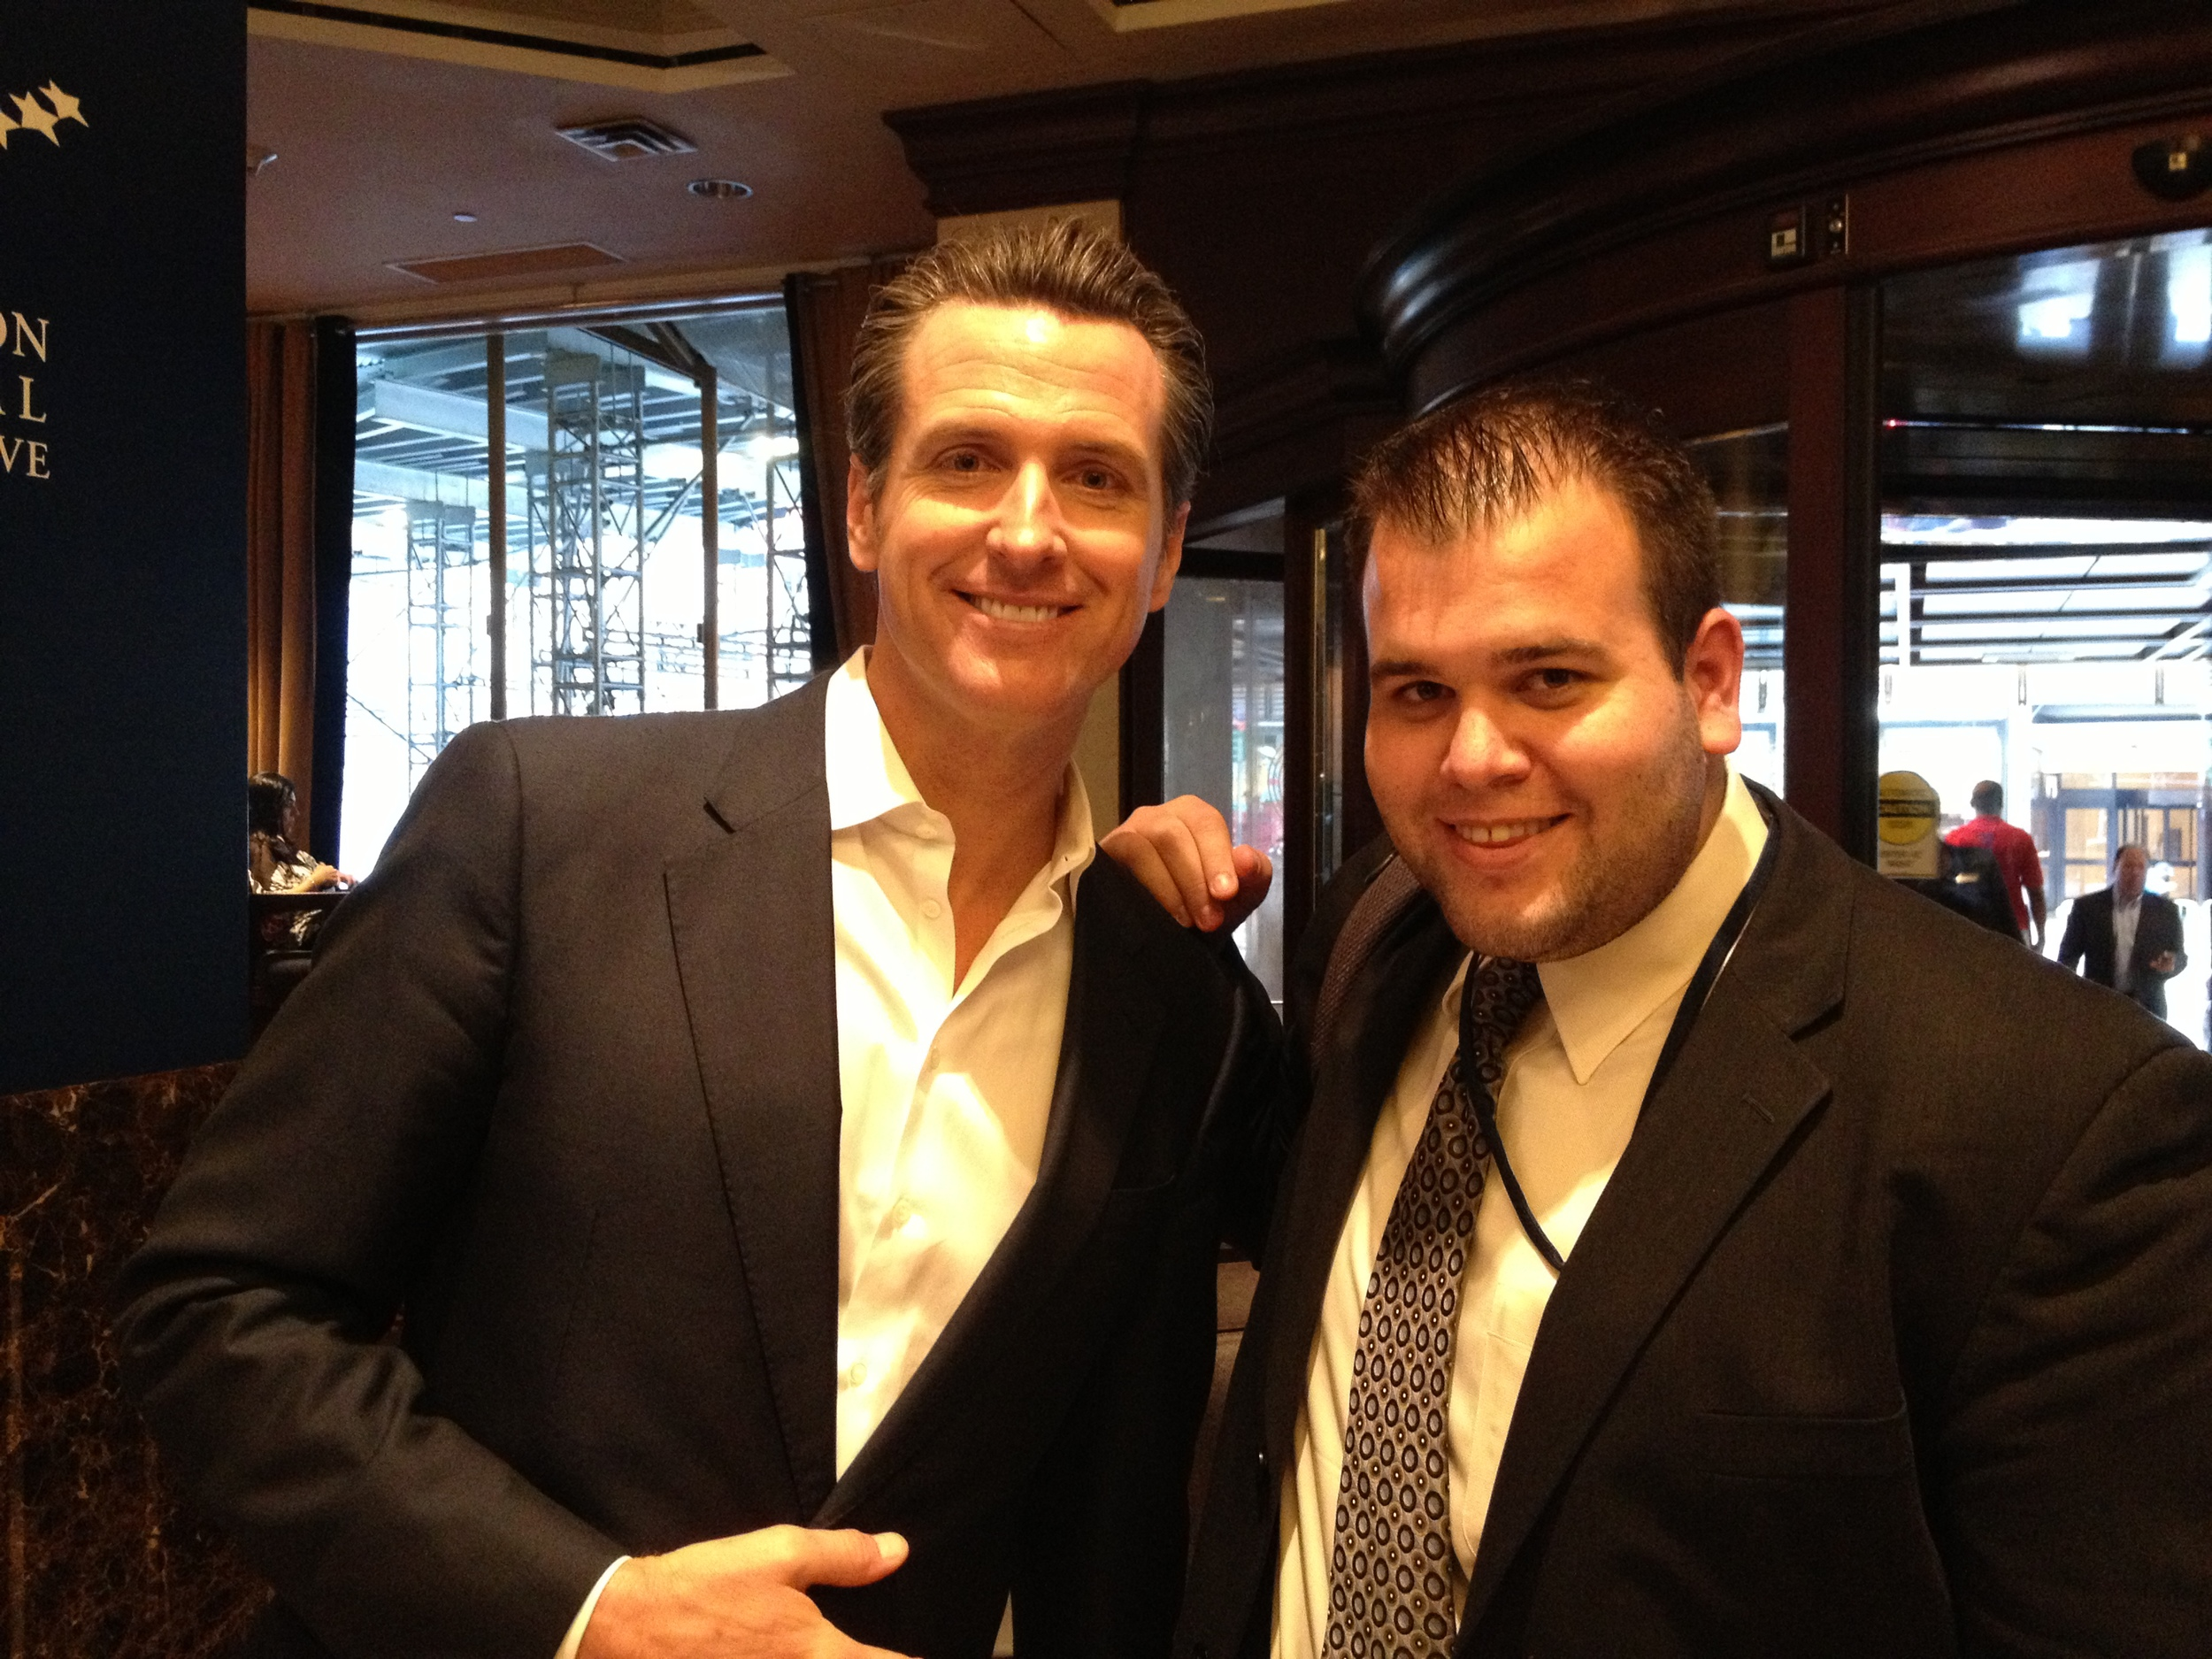 Meeting Gavin Newsom for the first time. I invited him to be a 105 Conversations interview in NYC at the 2012 Clinton Global Initiative.